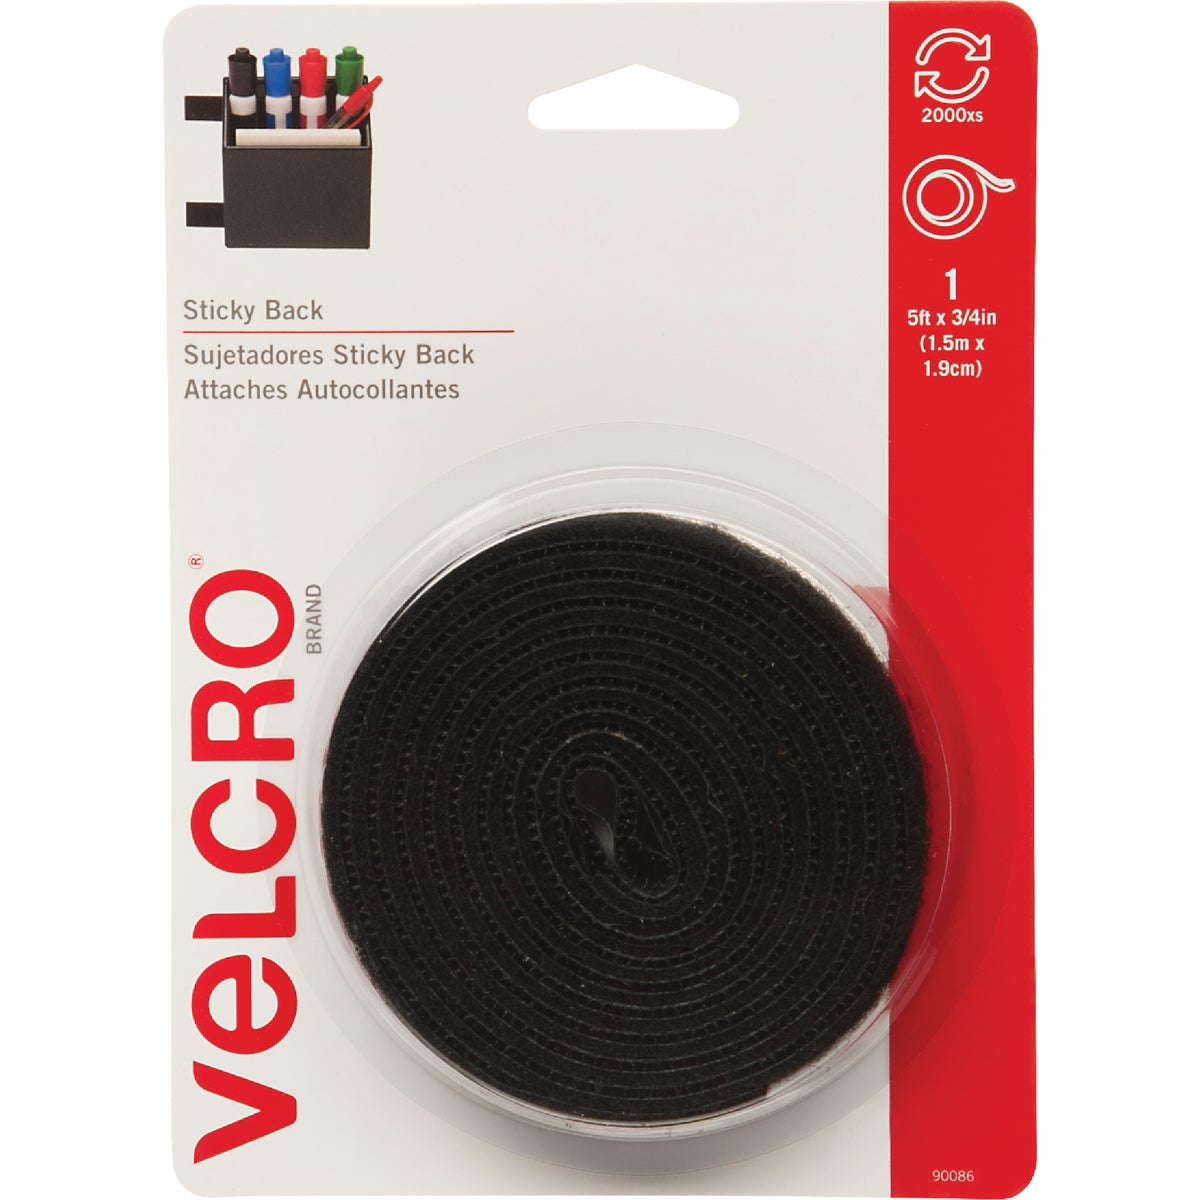 5' BLK ADHESIVE FASTENER - 90086 by Velcro Usa